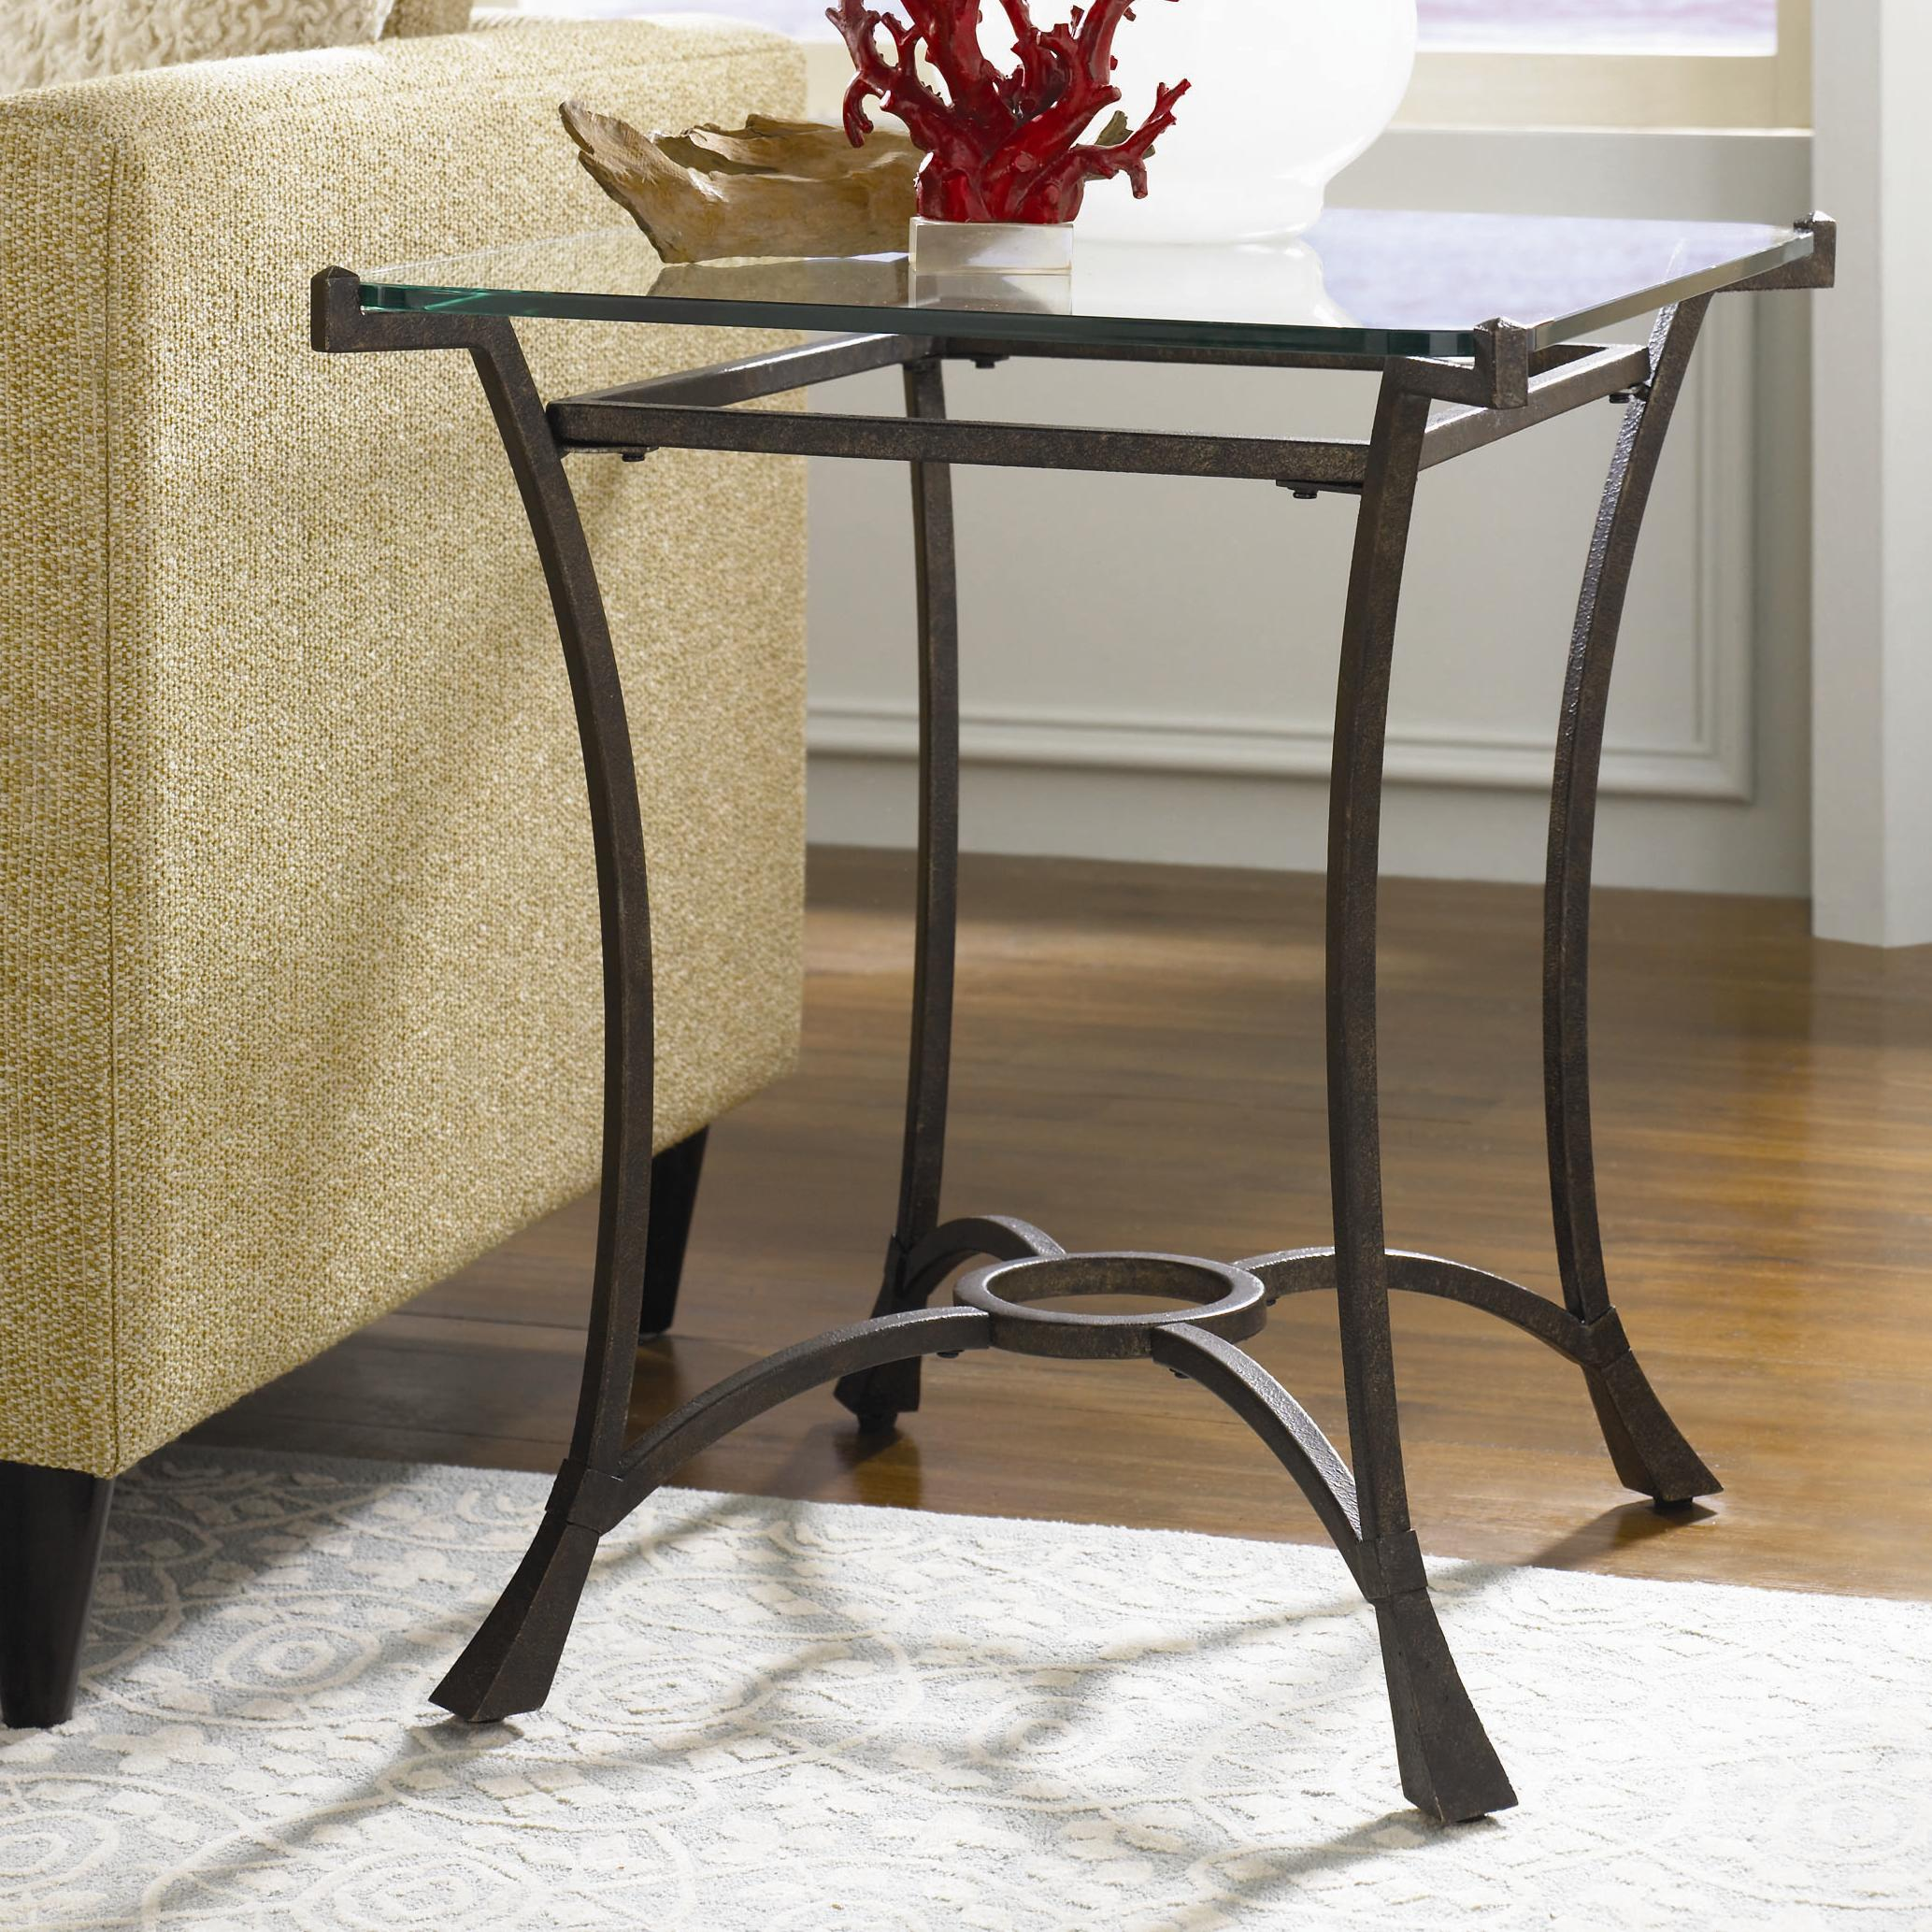 tea table design the terrific fun black metal and wood end tables hammary sutton contemporary rectangular with glass products color item number dog kennel furniture mid century